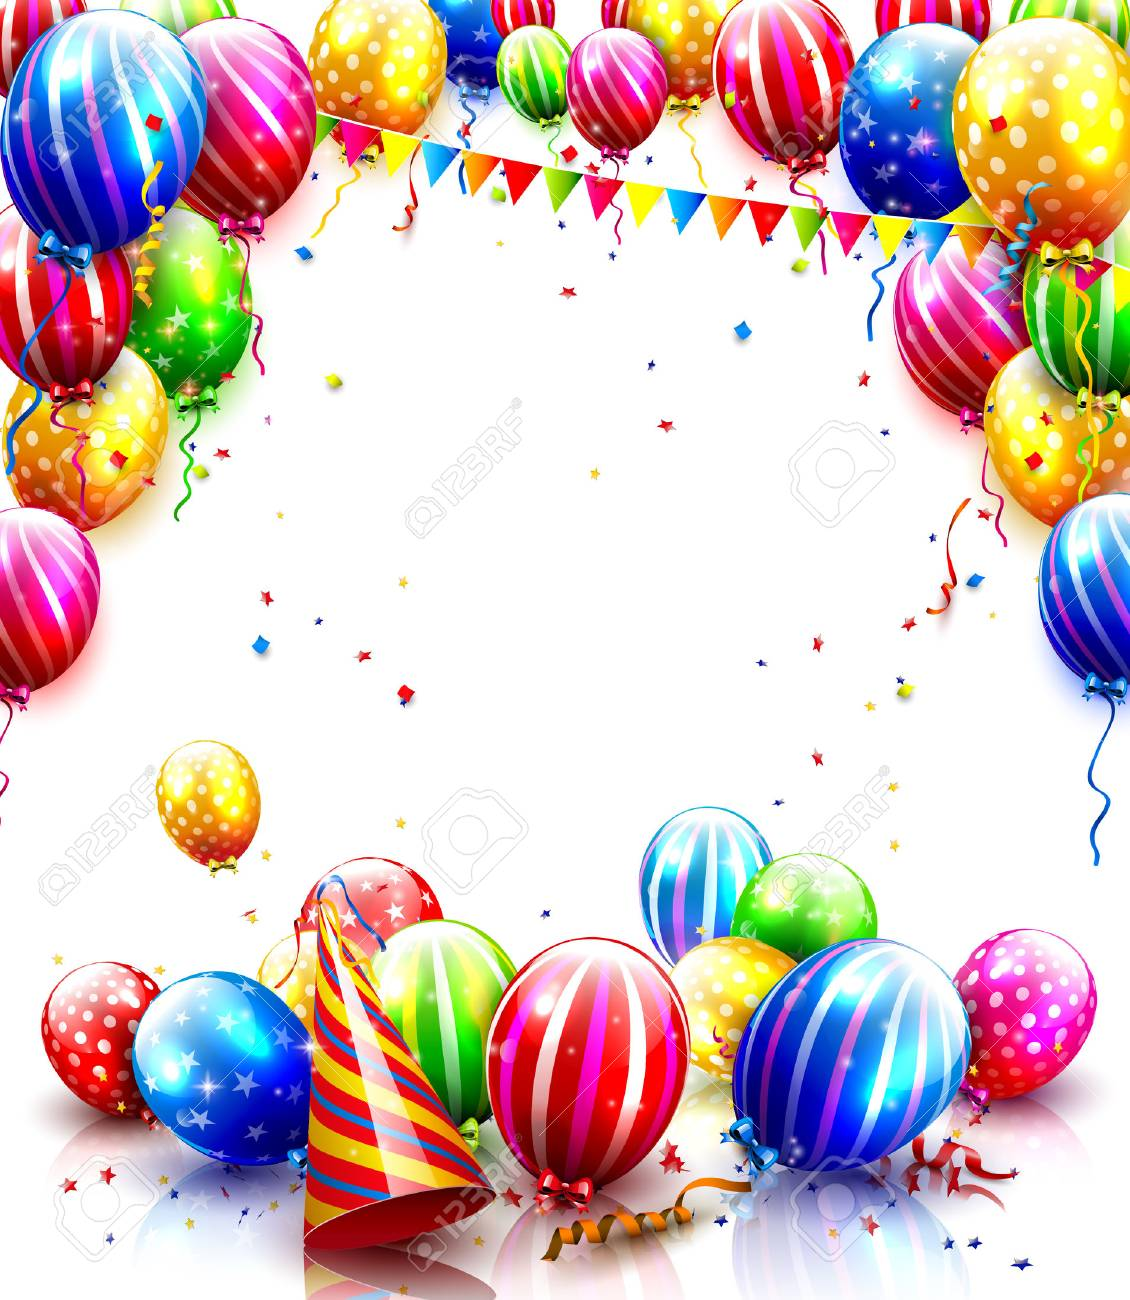 Colorful balloons and confetti isolated on white background. Party or birthday invitation template - 69813928